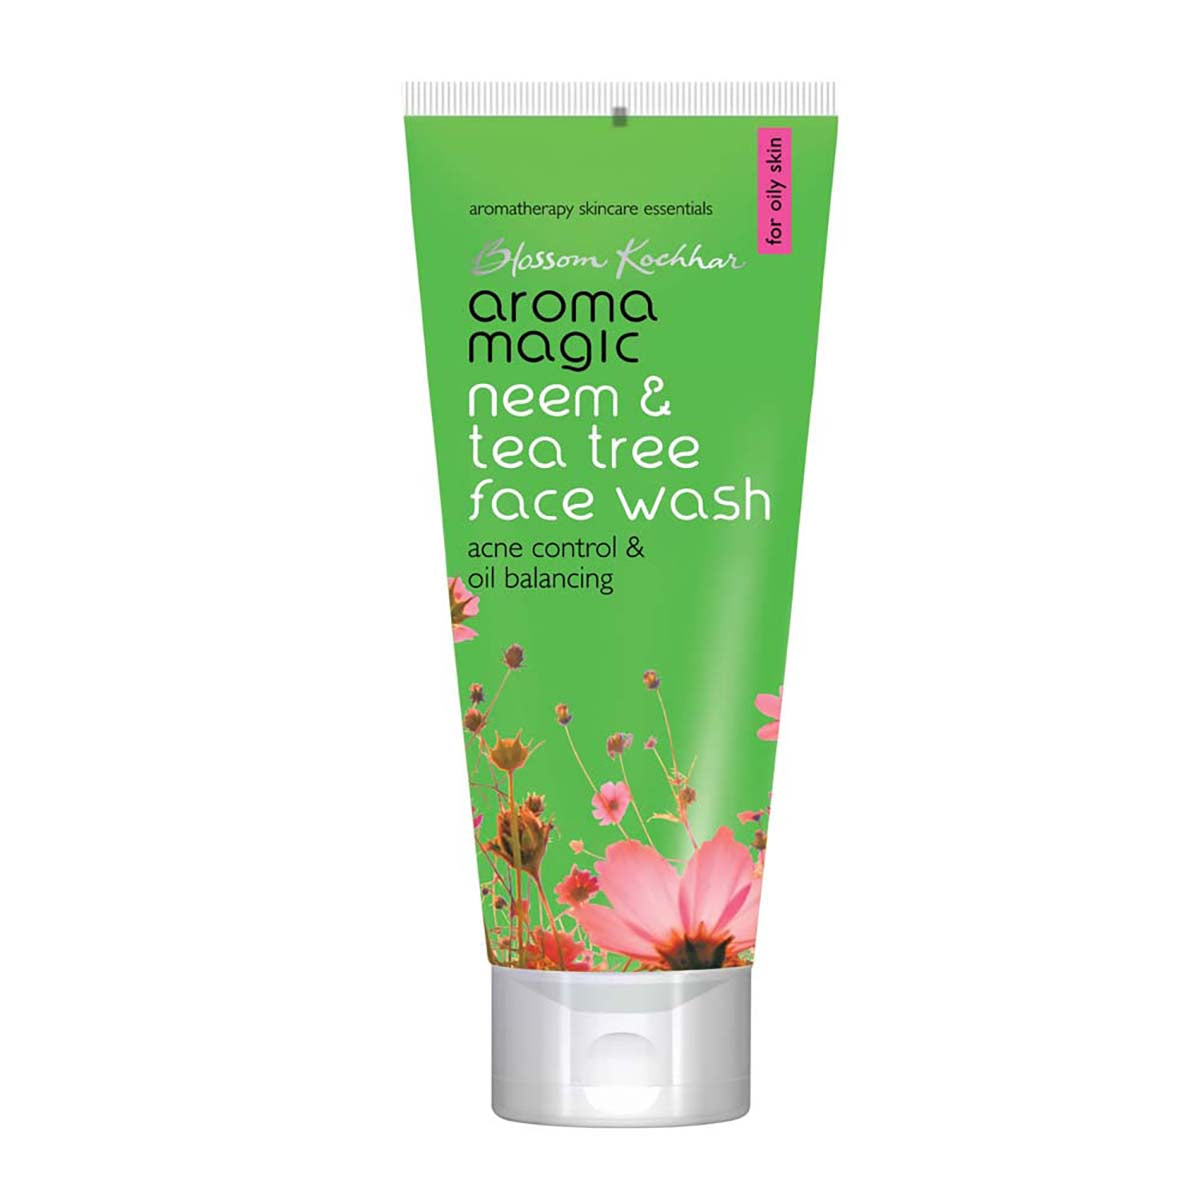 Neem-Tea-Tree-Face-Wash-Aroma-Magic (1009462575147)